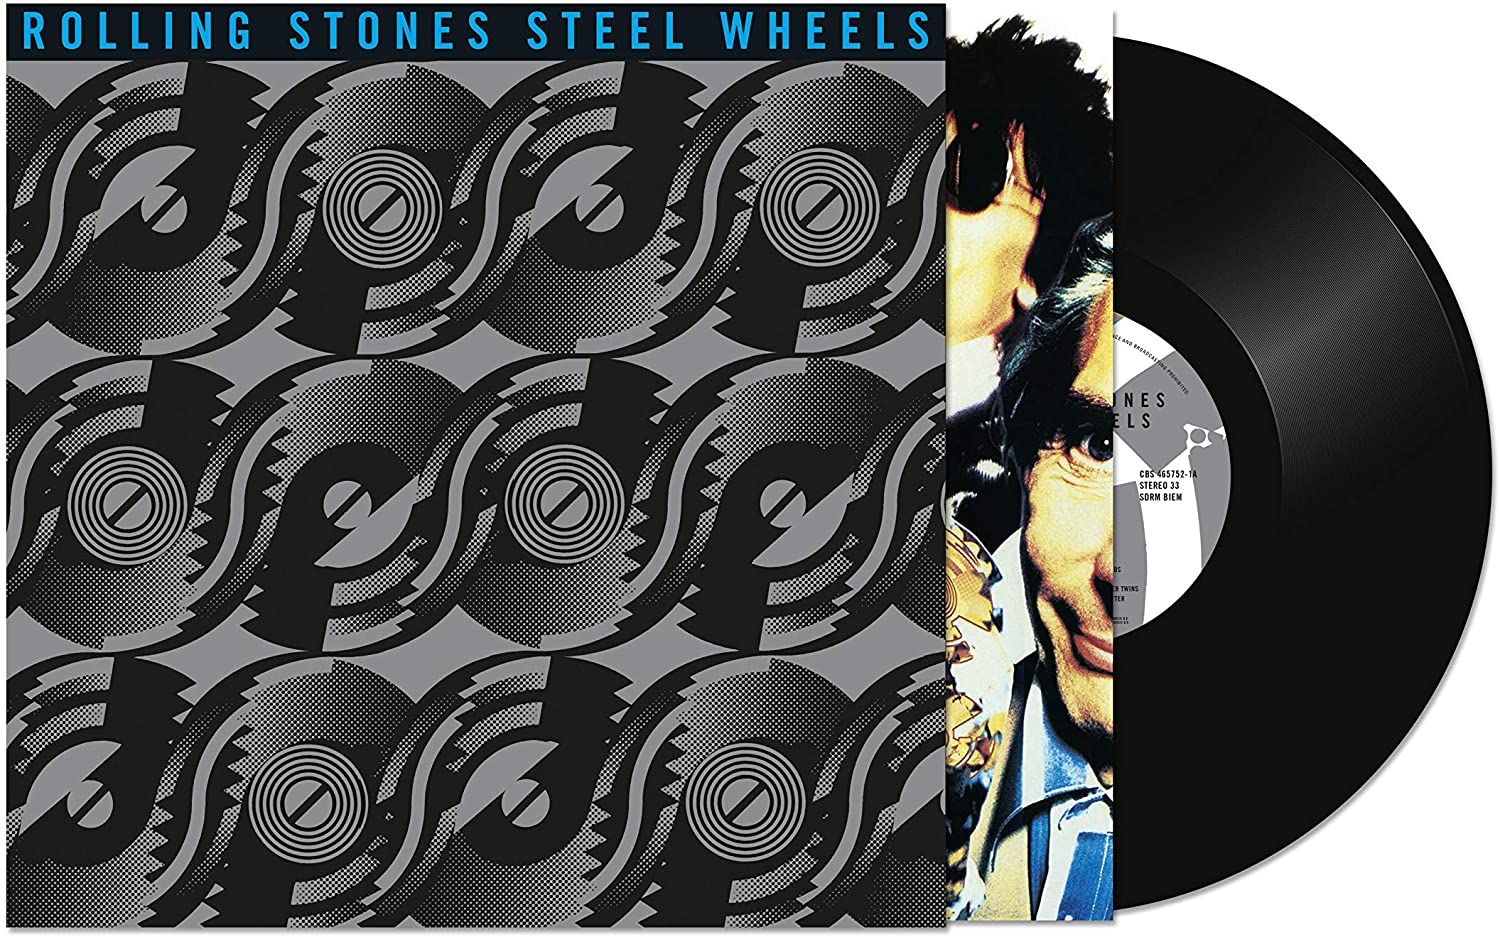 The Rolling Stones Steel Wheels Vinyl LP